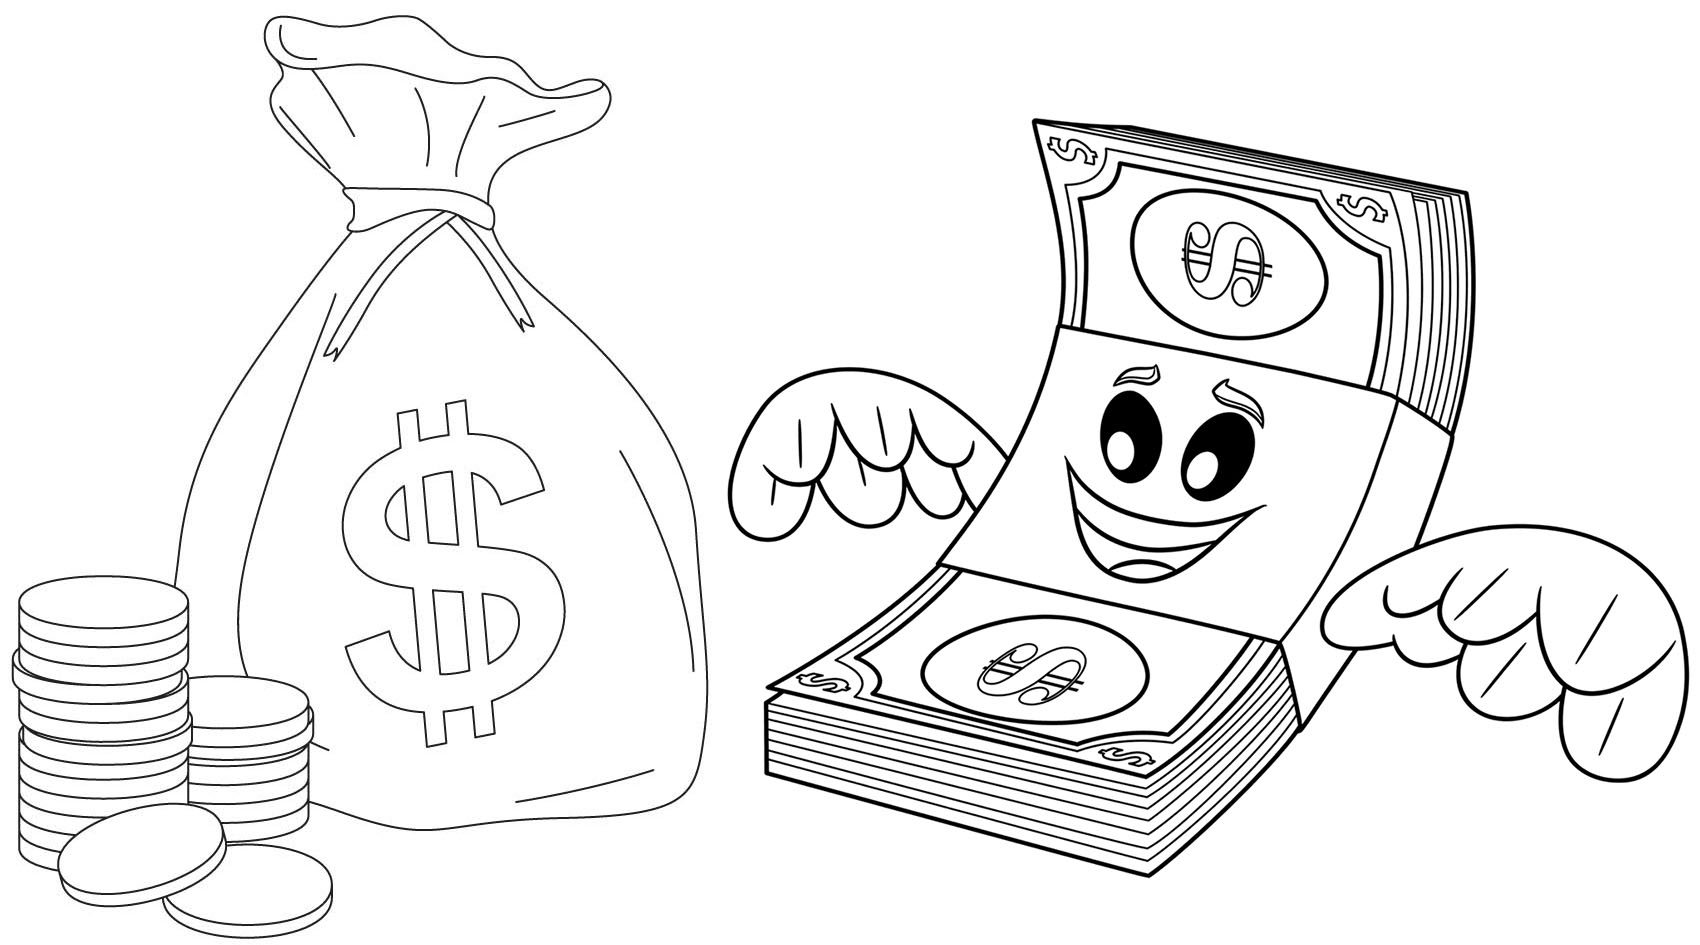 money coloring page printable money coloring pages for kids cool2bkids money page coloring